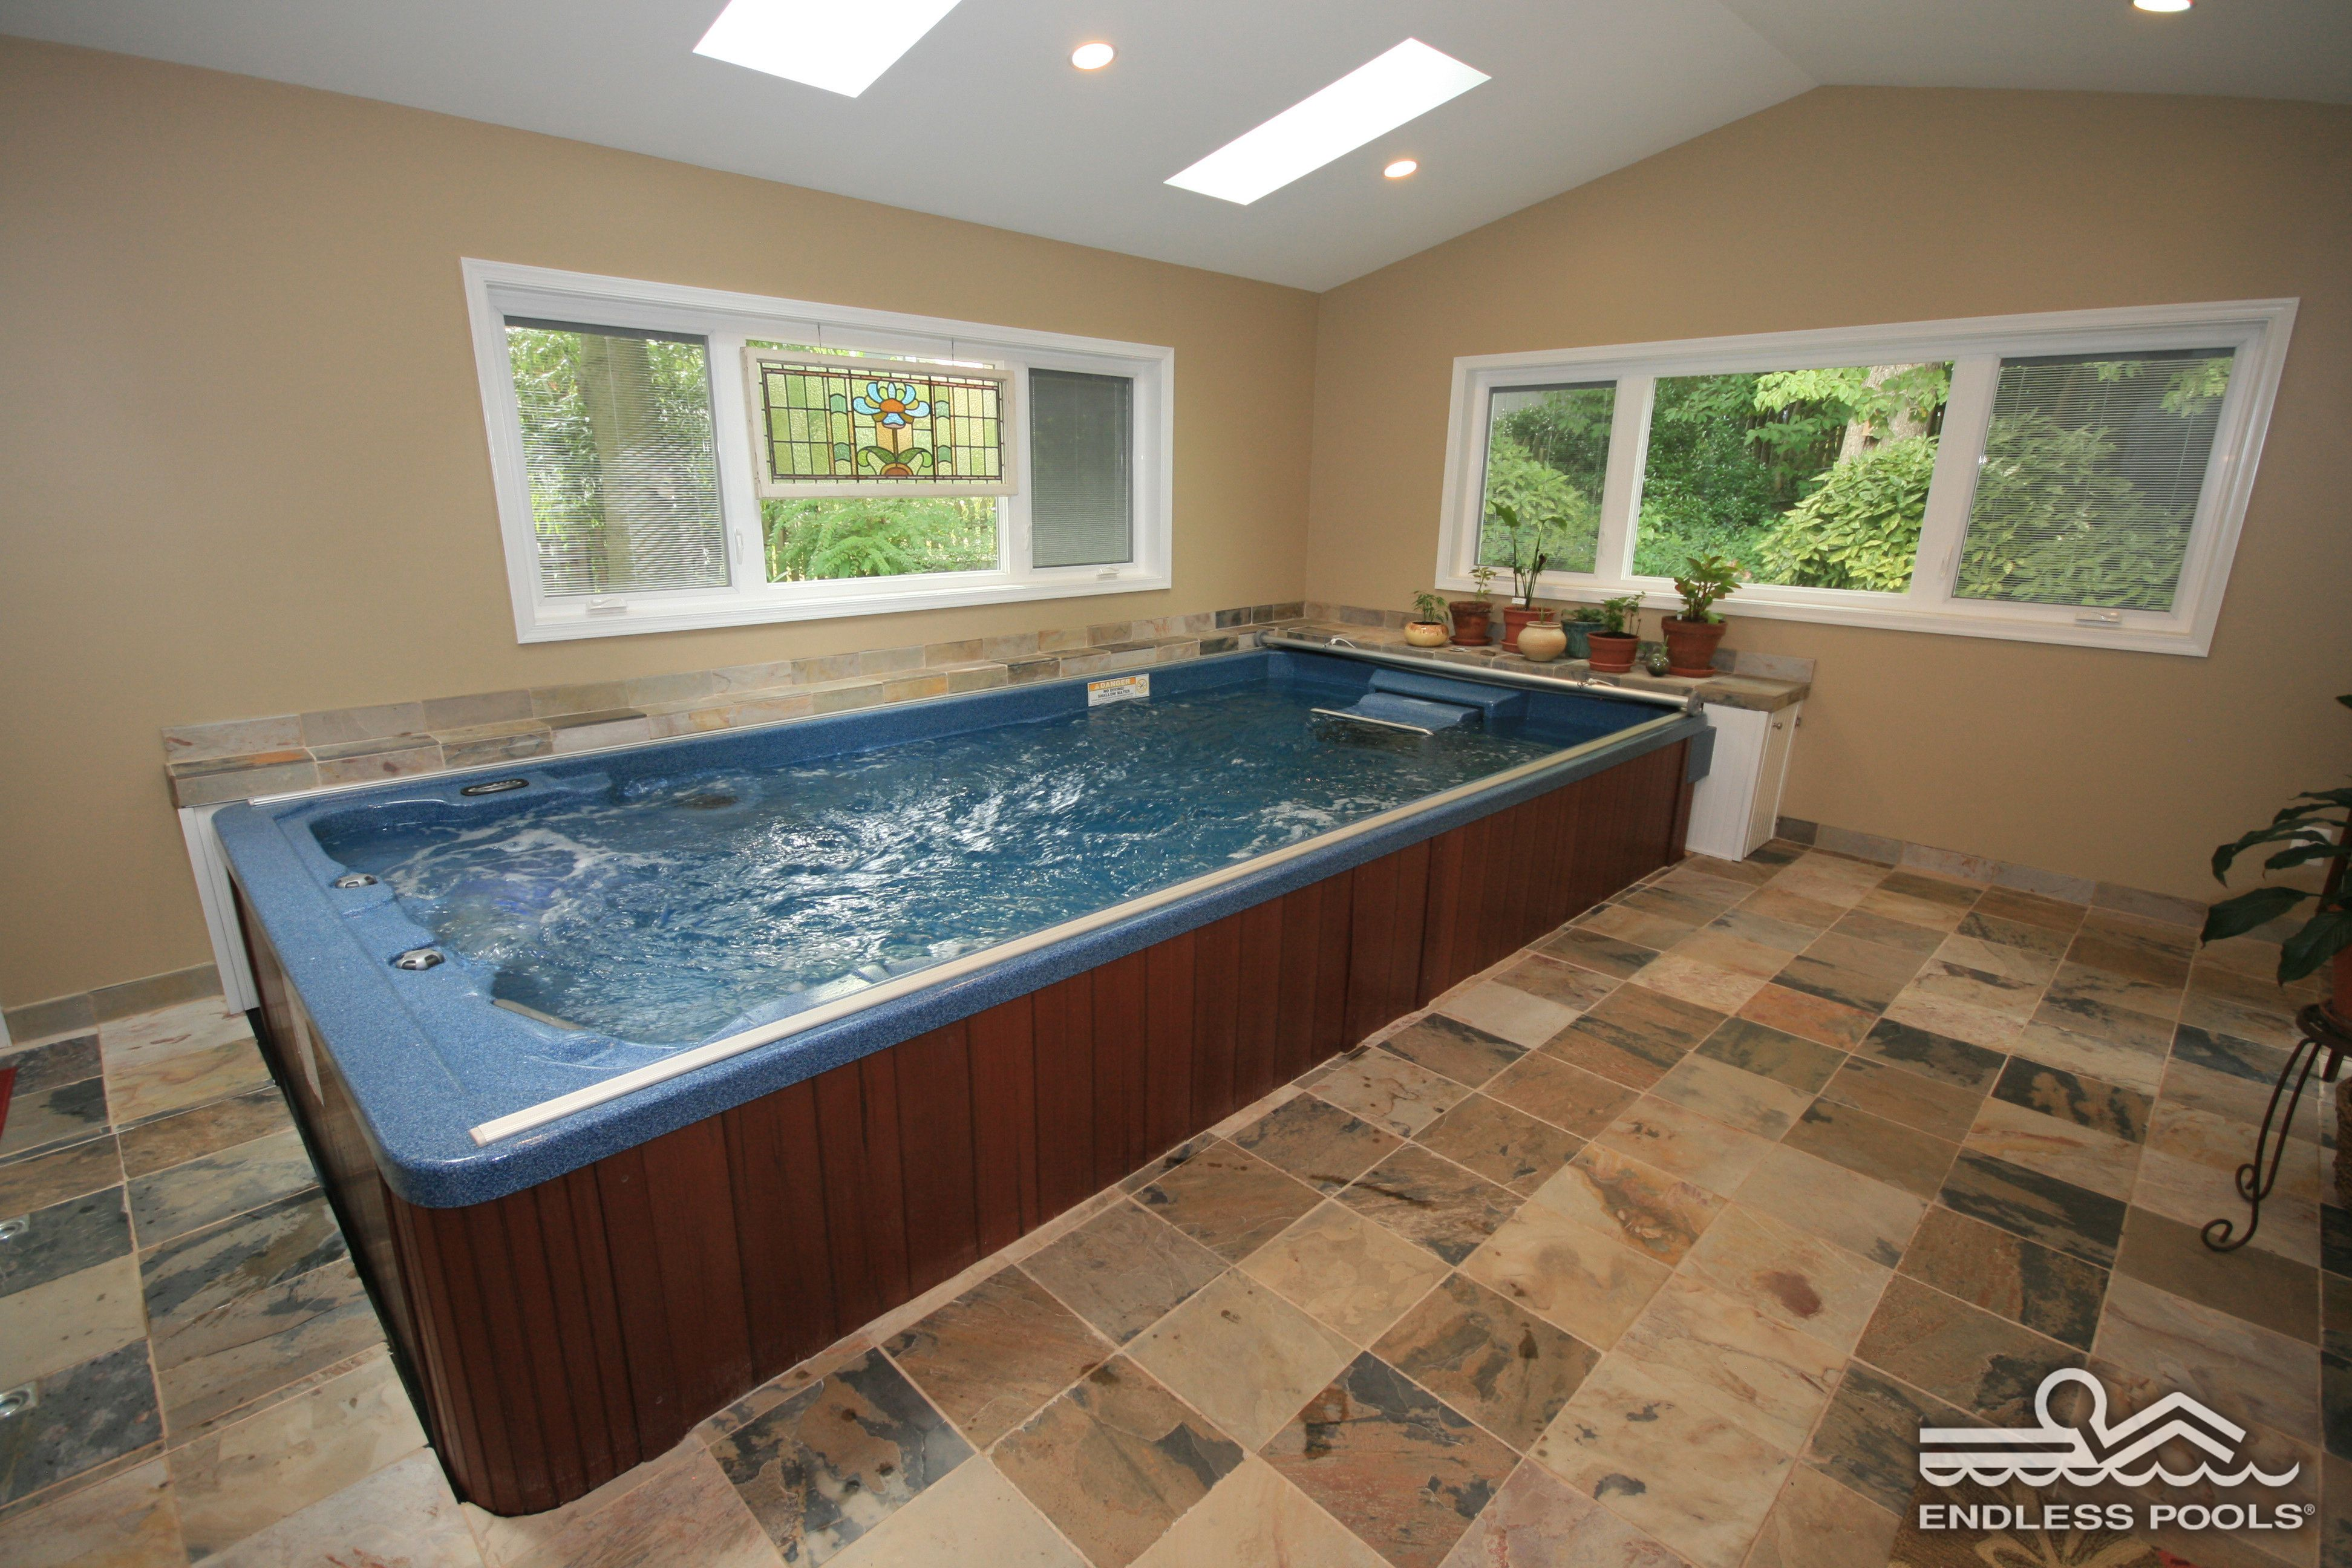 This Endless Pools Swim Spa Was Installed Indoors For Comfortable Year Round Use No Matter The